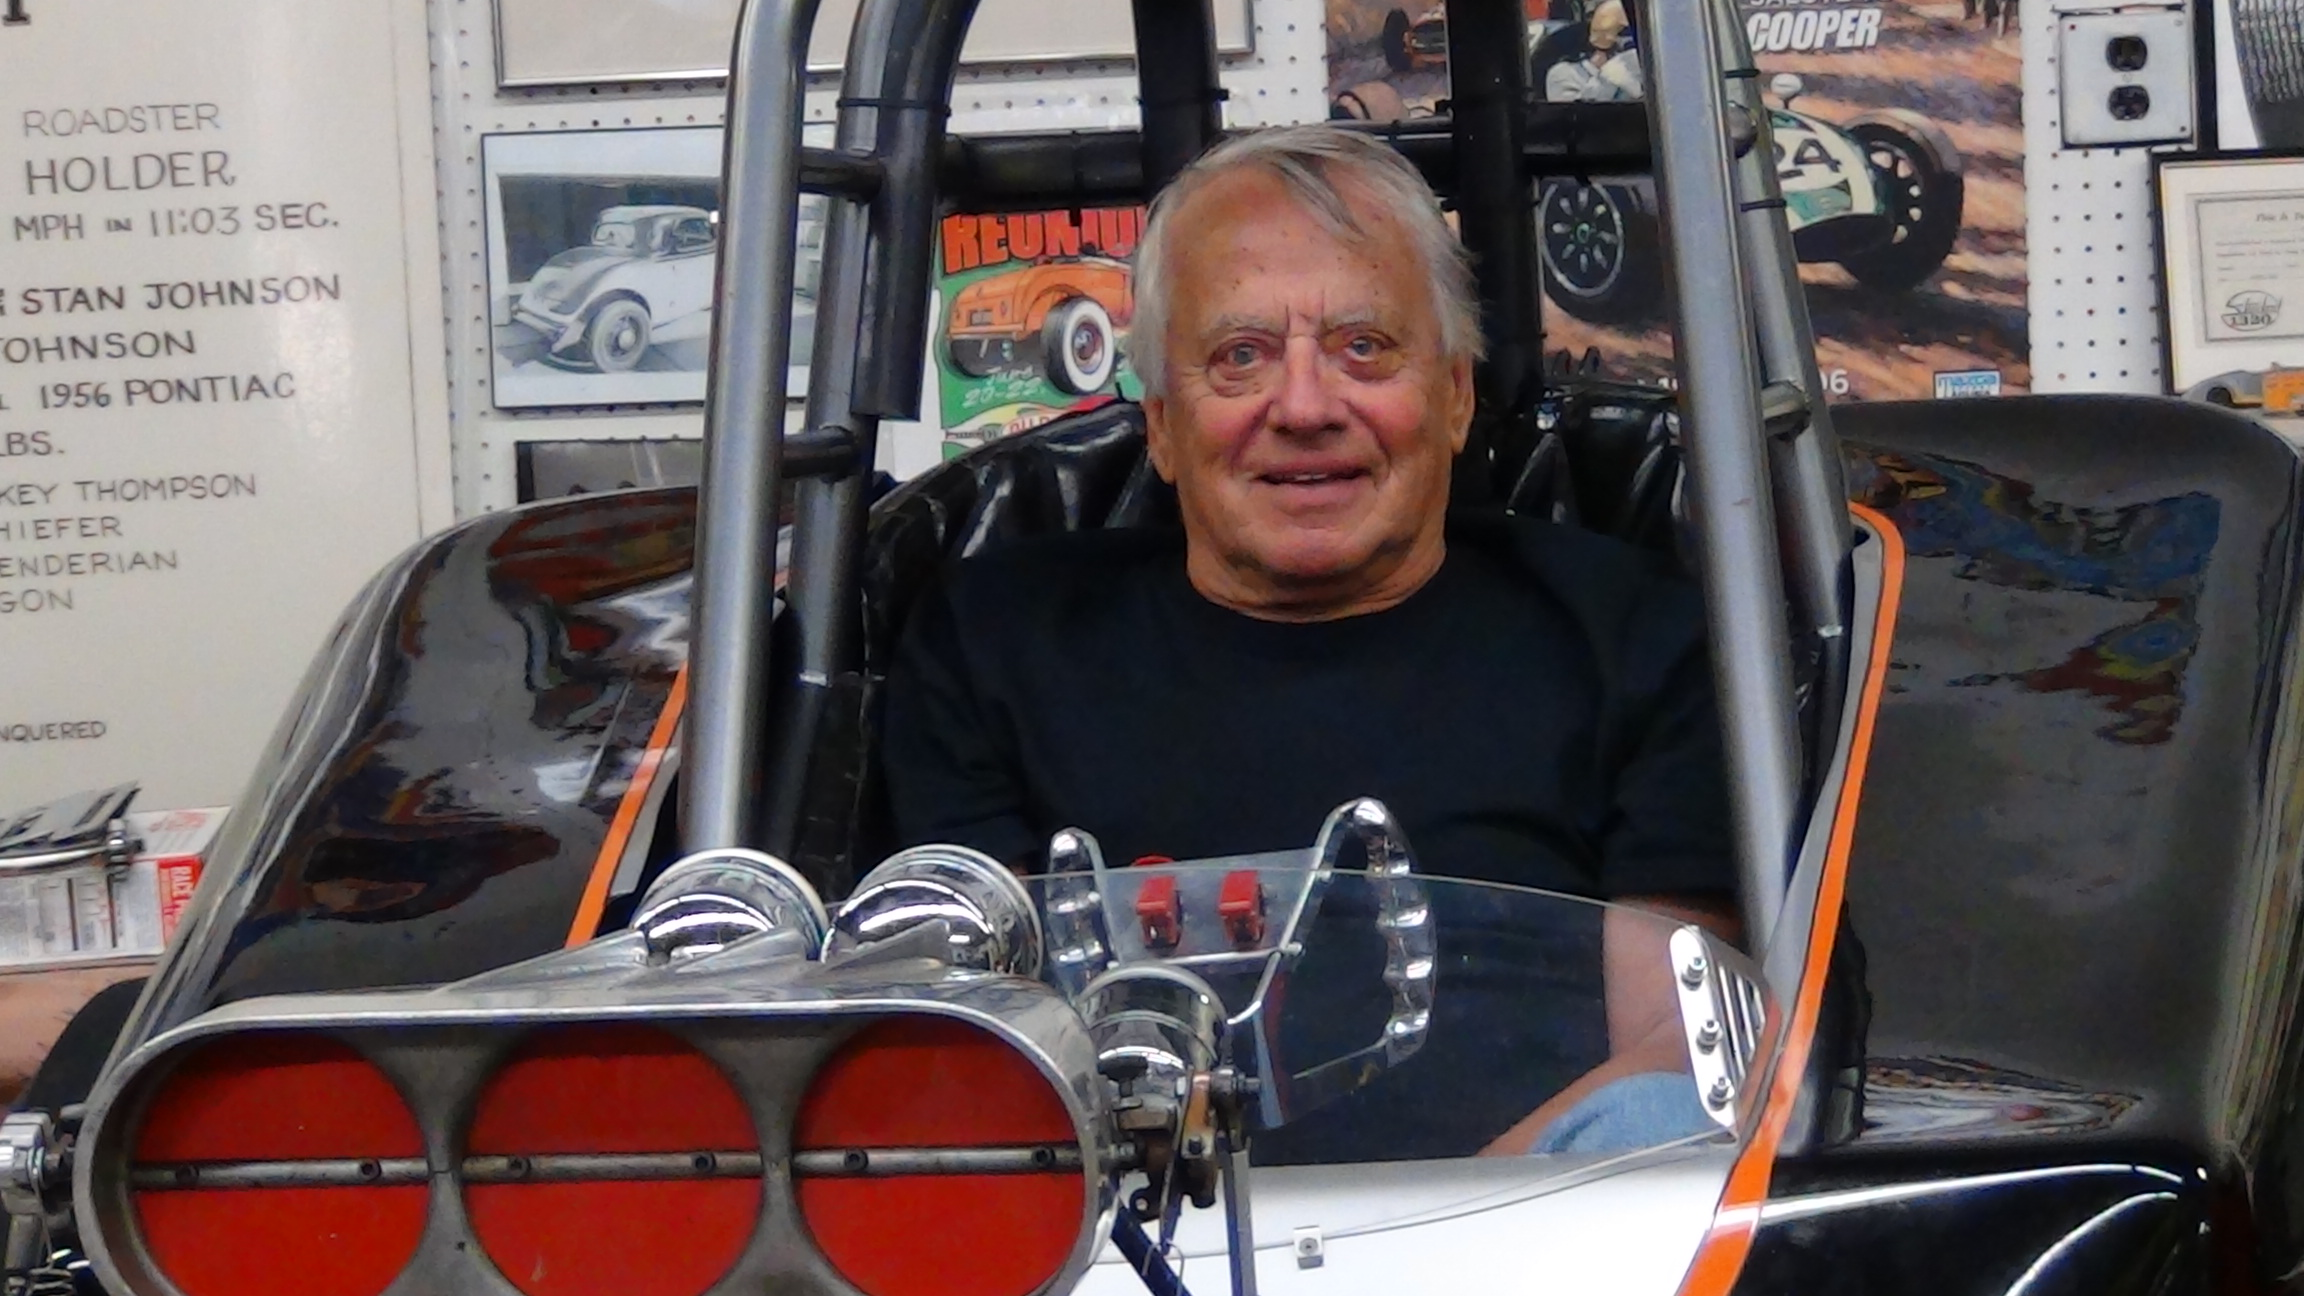 Stan Johnson design genius and the man behind the Silver Bullet